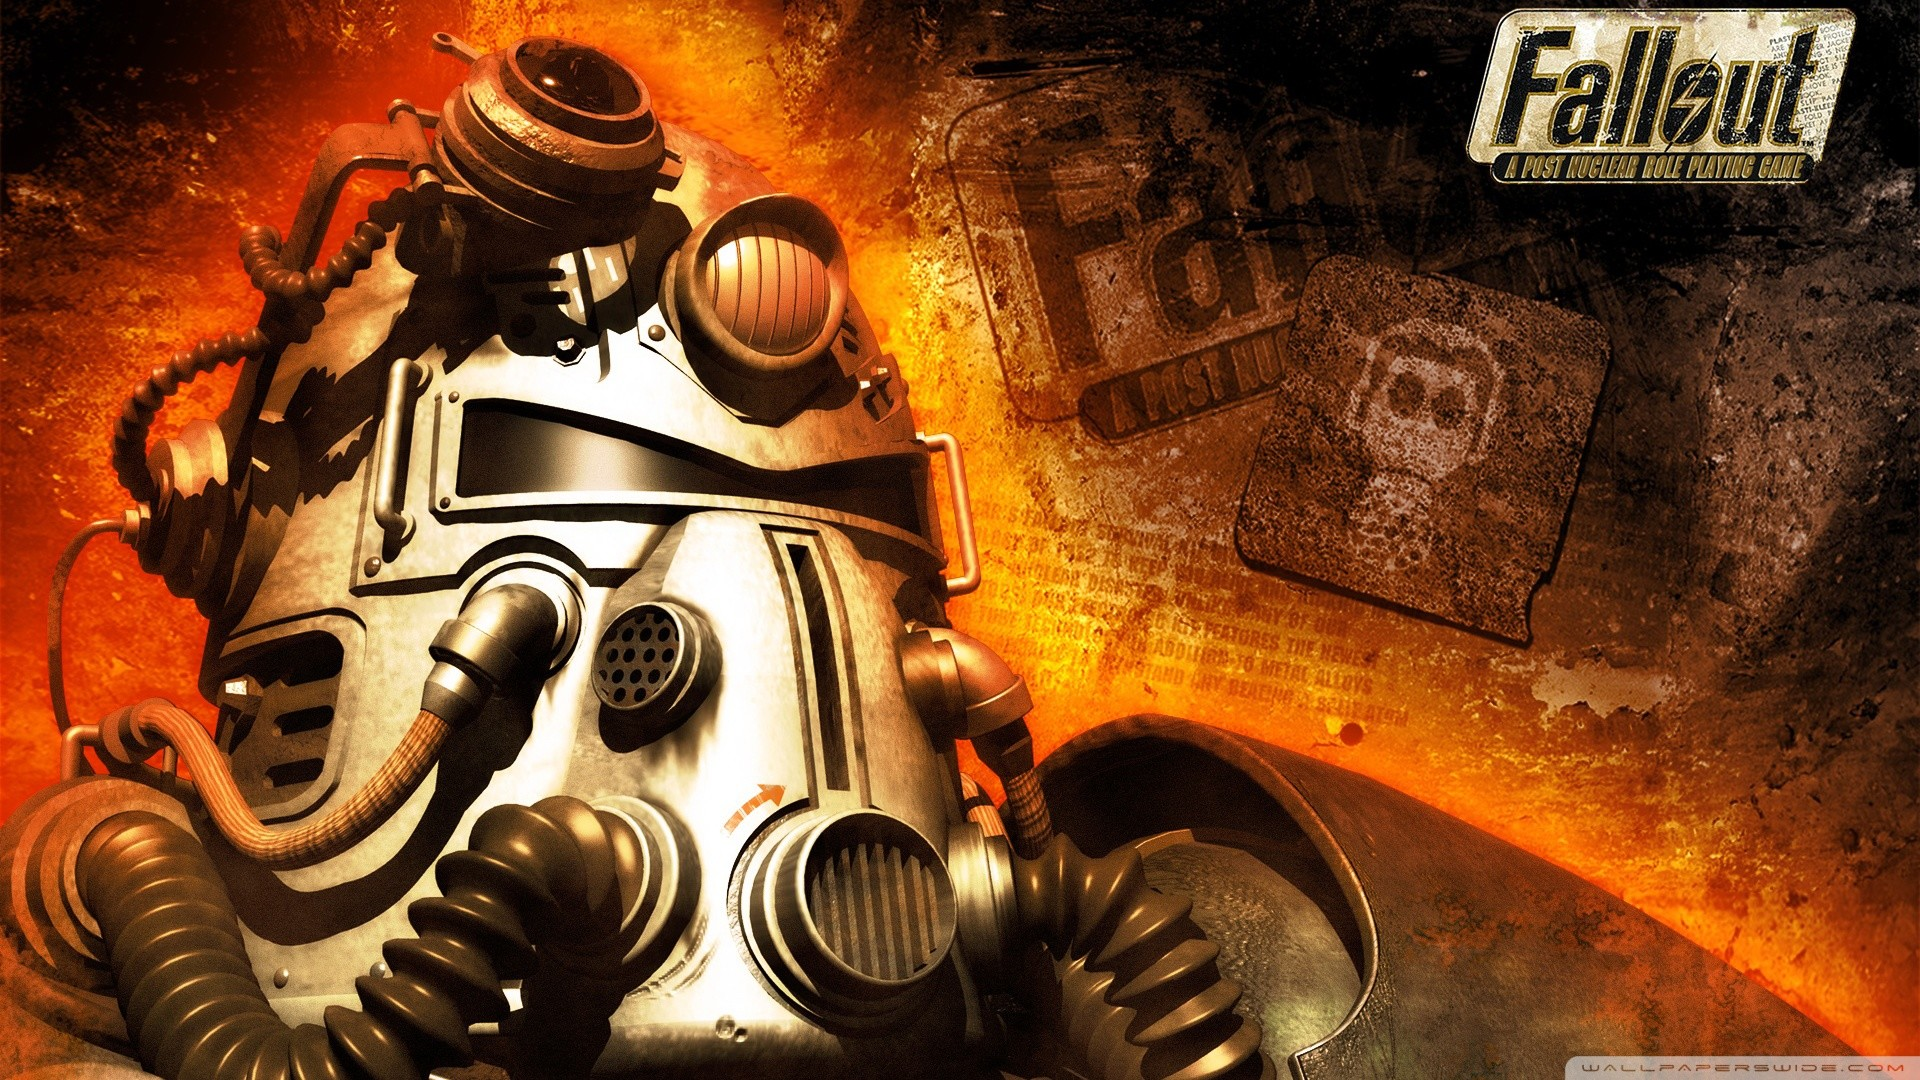 Res: 1920x1080, fallout_1-wallpaper--by-acer_9876.  Fallout_3_Brotherhood_of_Steel_Exploding_HD_Wallpaper_Vvallpaper.